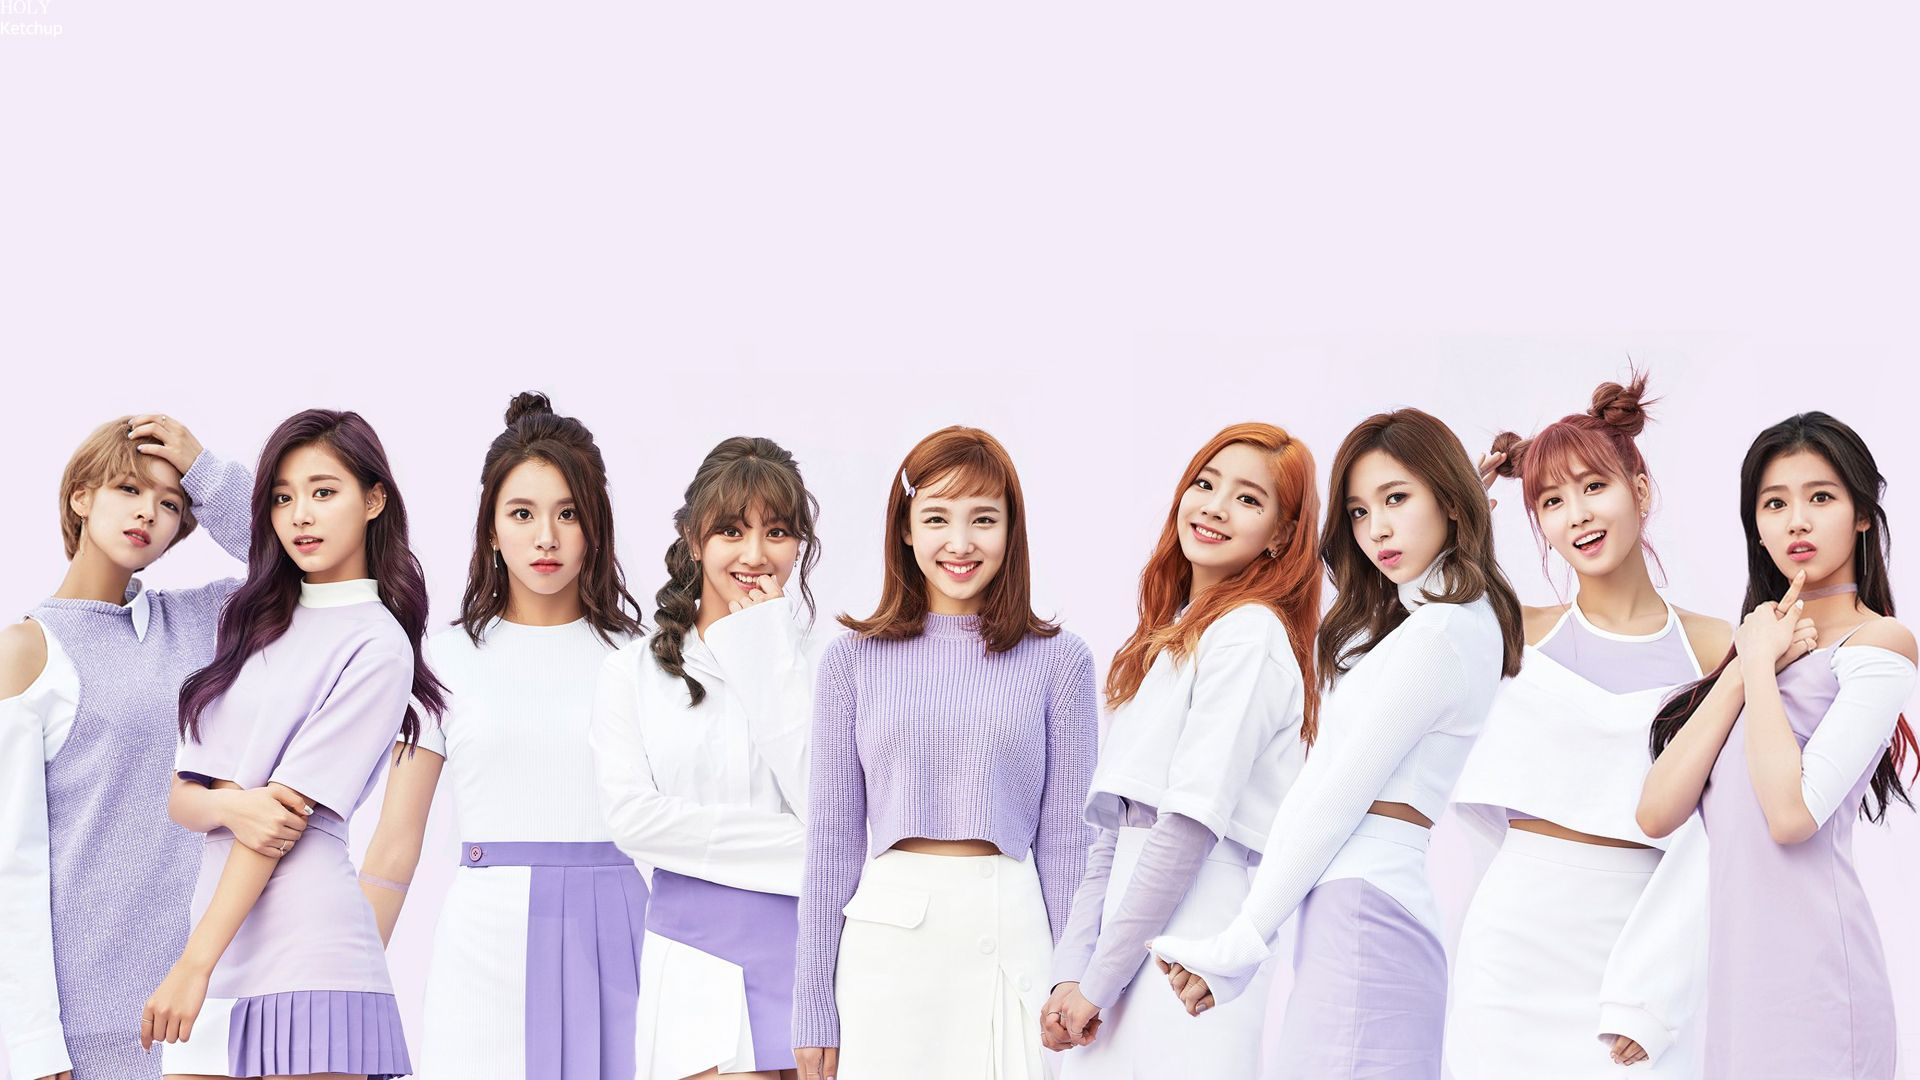 Twice Is A South Korean Girl Group Formed By Jyp Entertainment Through The 2015 Reality Show Sixteen The Group Is C Korean Girl Groups Kpop Girls Wallpaper Pc